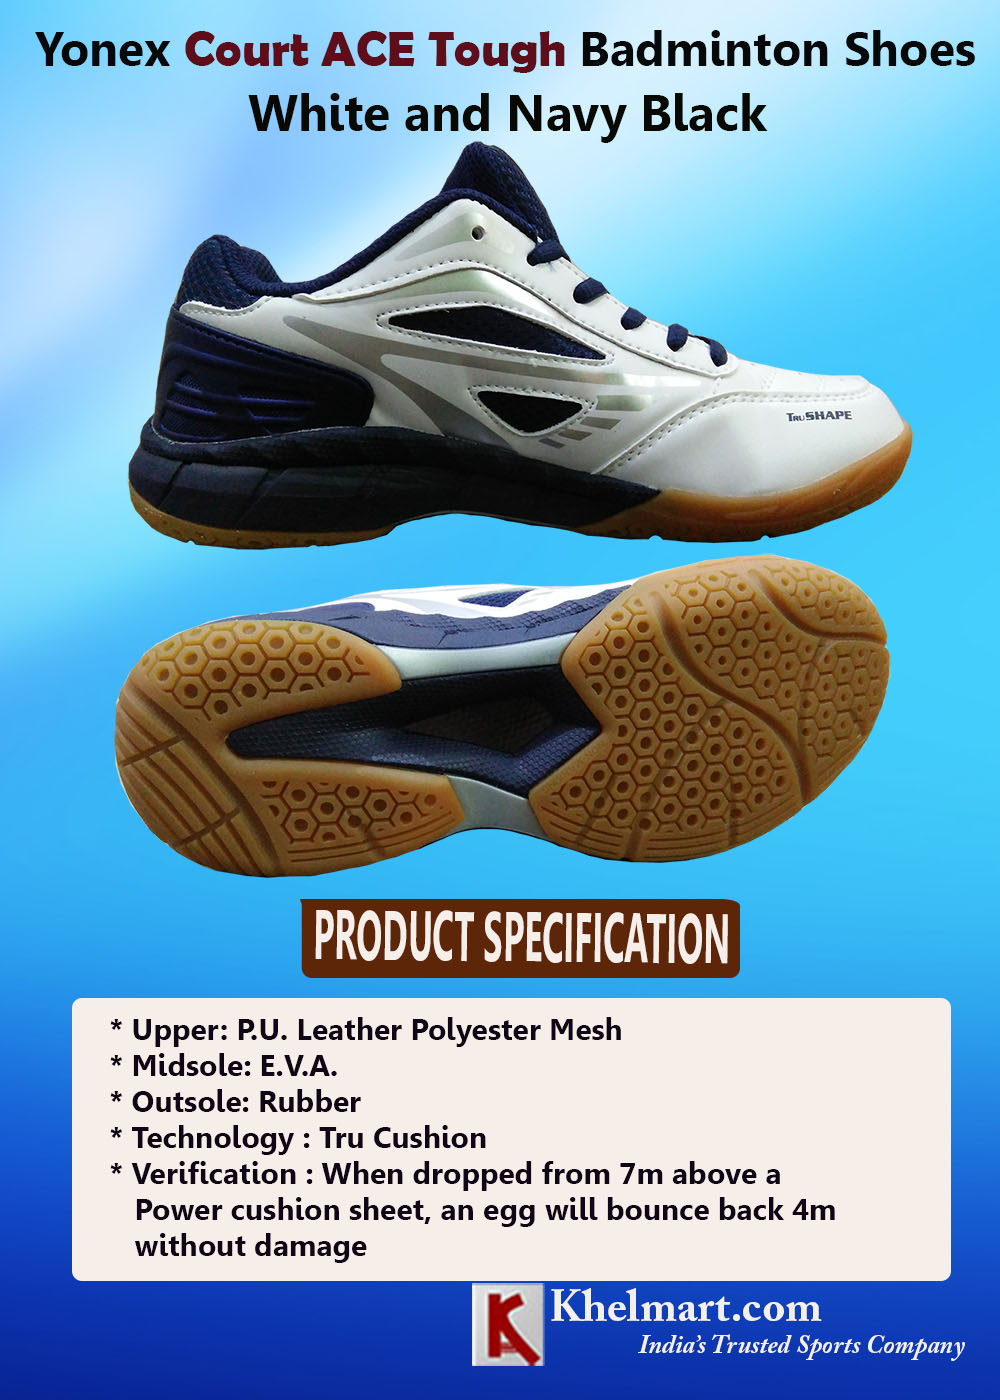 Yonex Court ACE Tough Badminton Shoes White Navy and Black_2